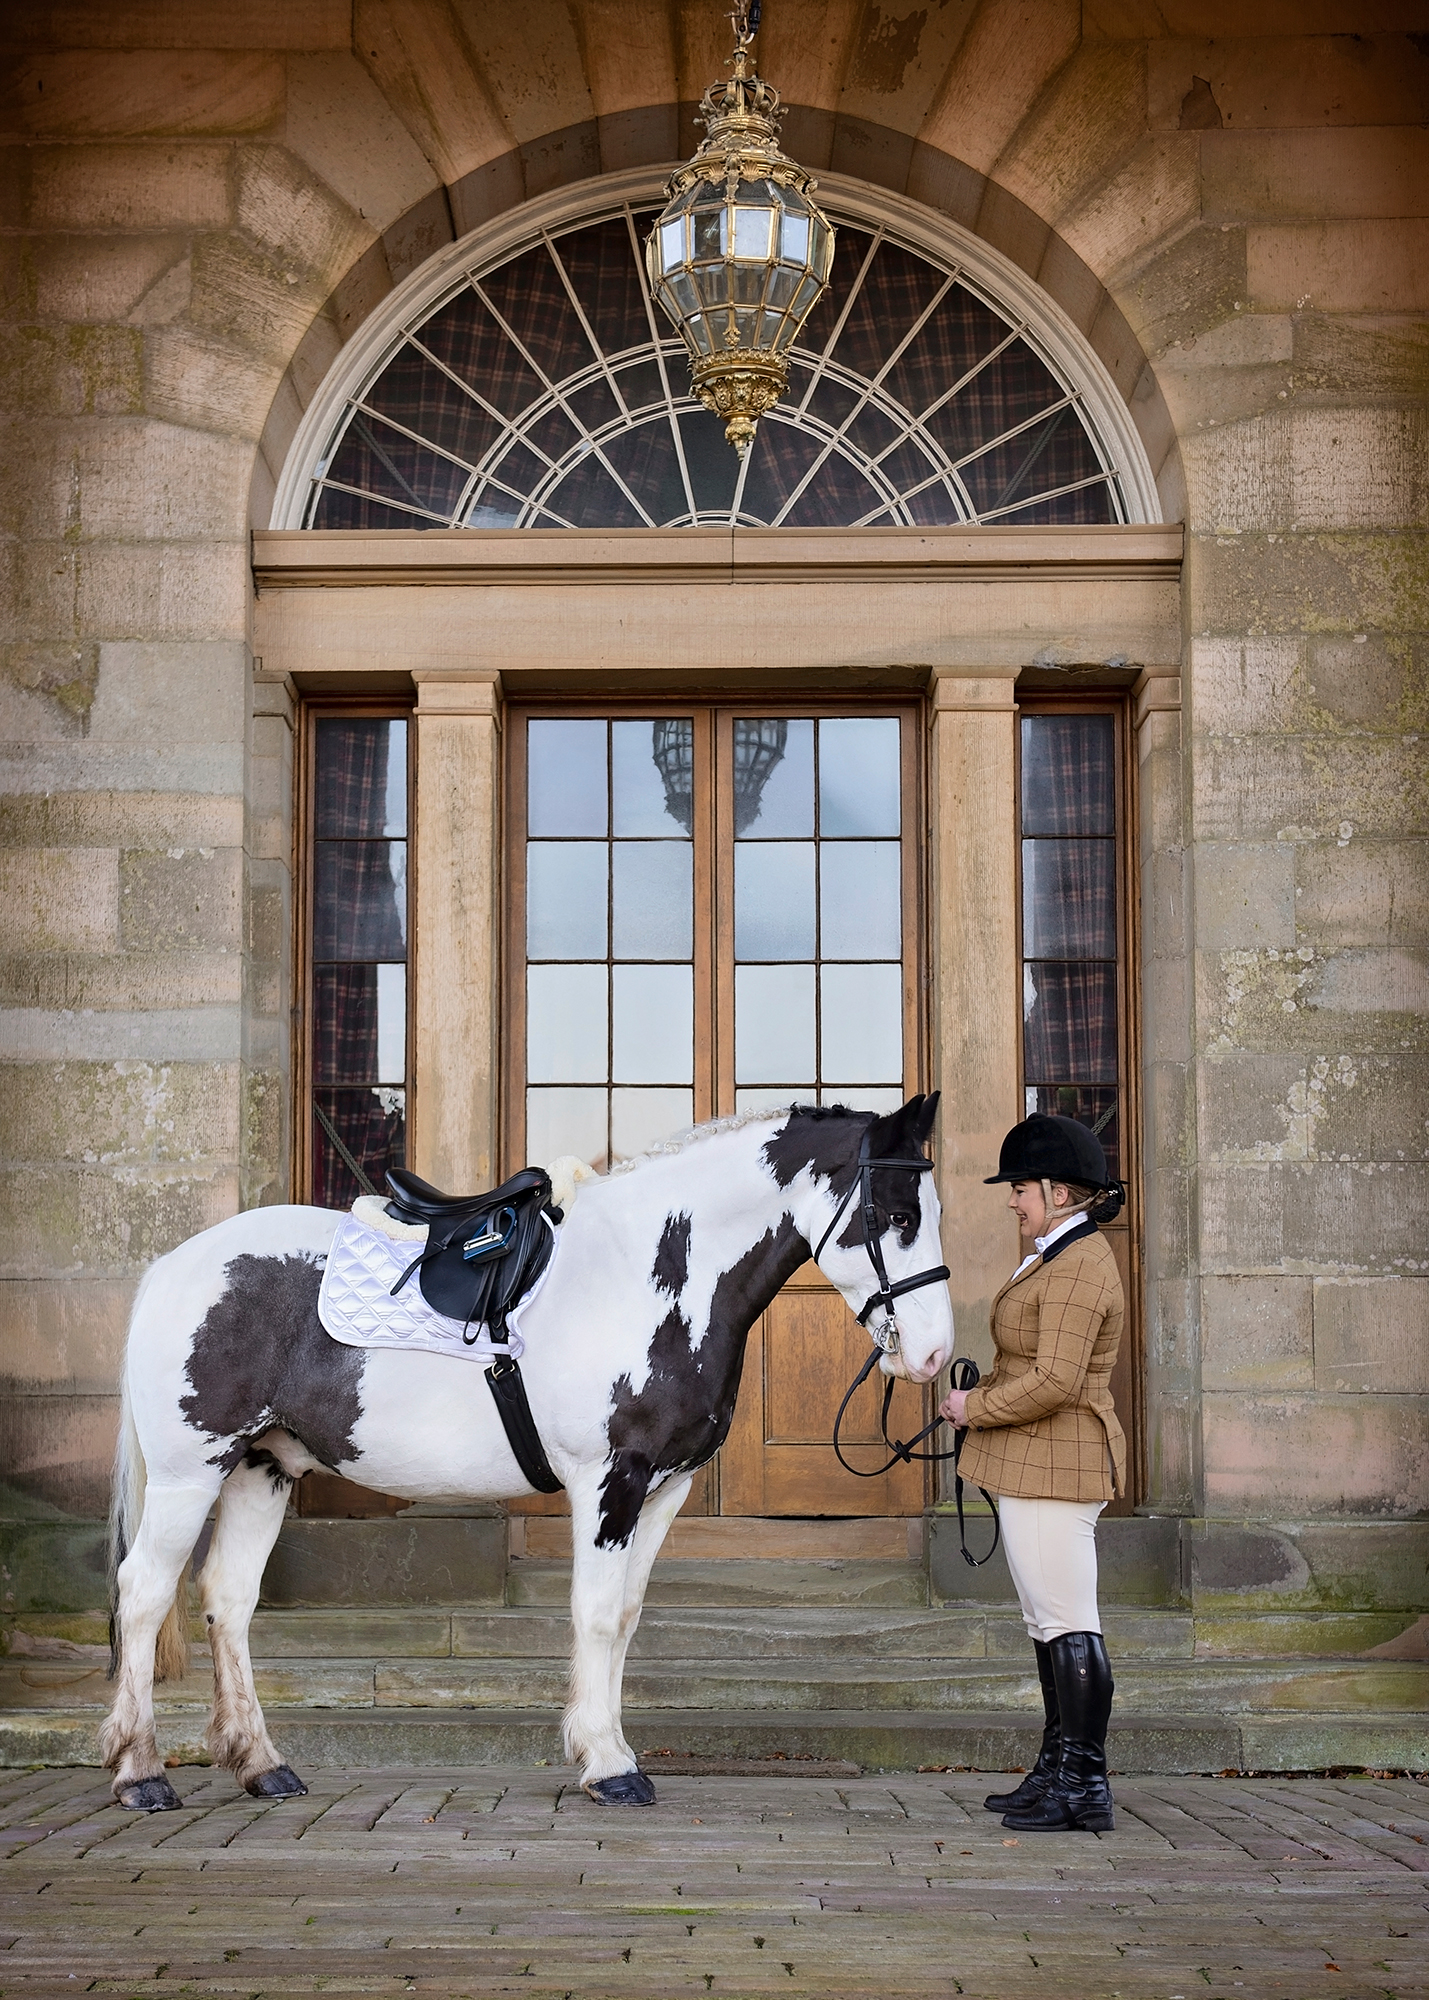 A scottish estate - perfect for an equestrian photoshoot